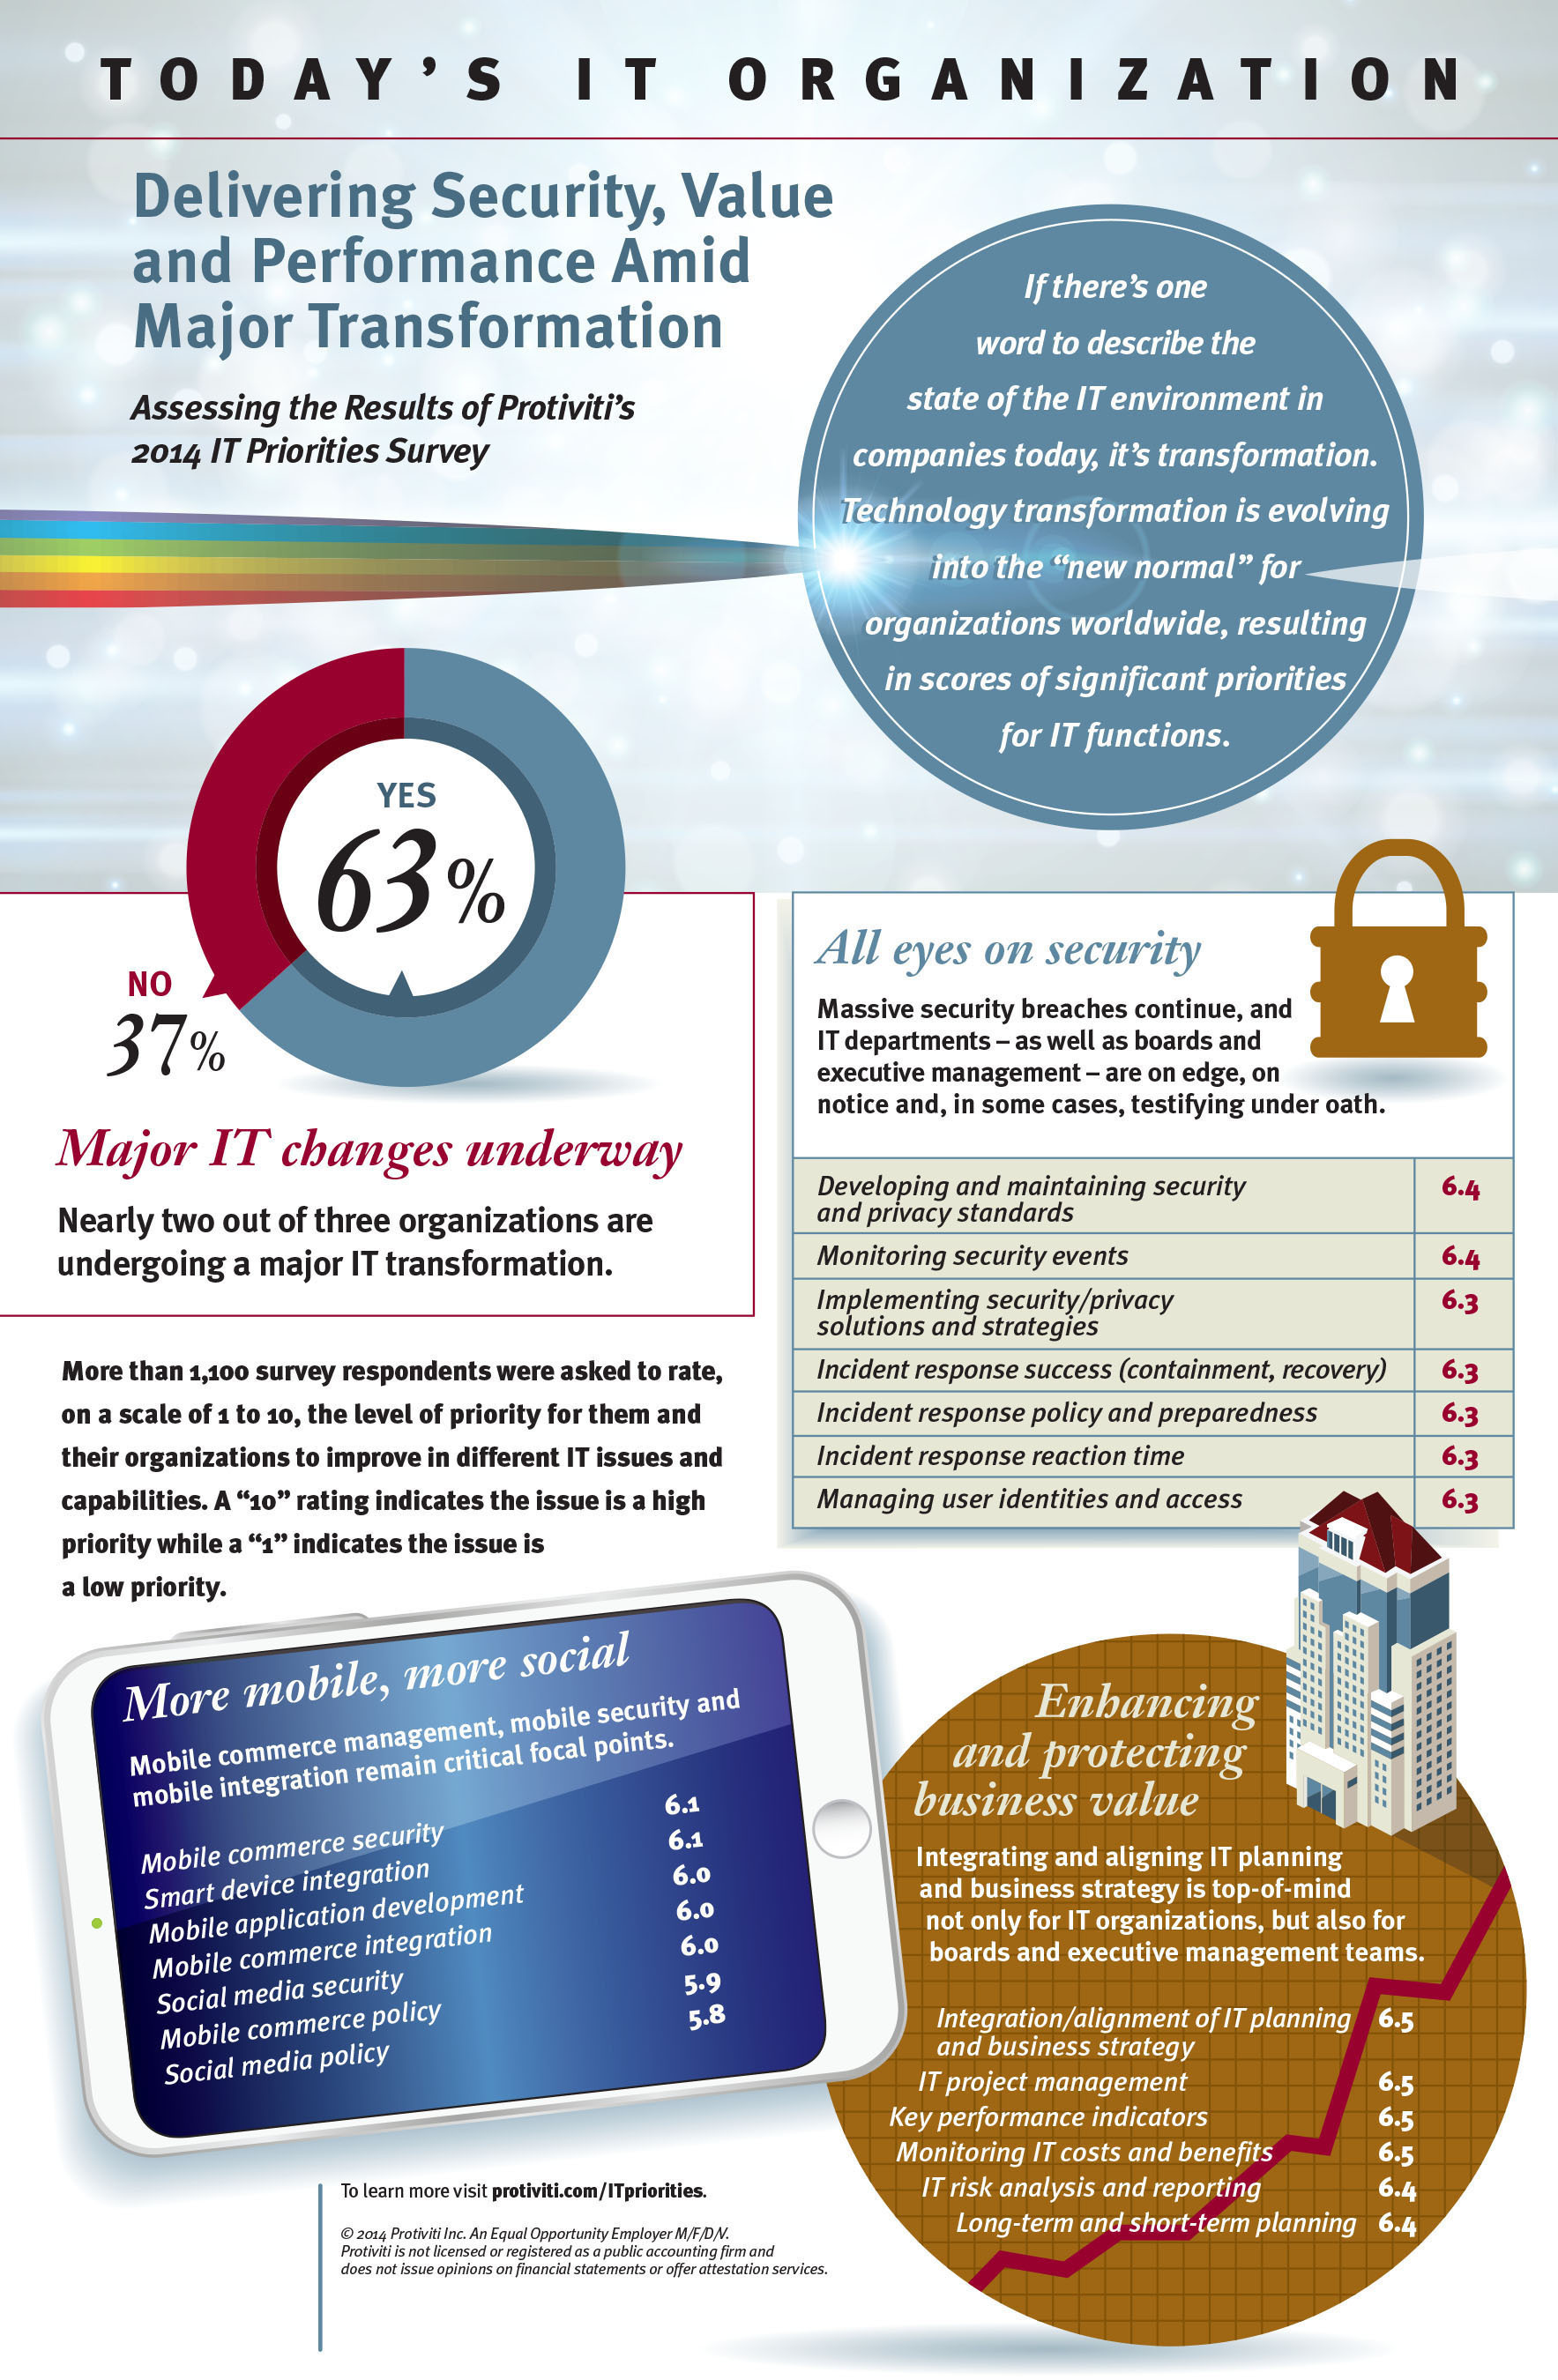 Nearly two out of three (63 percent) CIOs and information technology professionals report that there is a 'major IT transformation' underway in their organizations, driven largely by broader efforts to deliver added value, enhance business performance and increase security, according to a new survey by global consulting firm Protiviti  (www.protiviti.com/ITpriorities). The 2014 IT Priorities Survey found that the roles of CIOs and business-minded technology leaders continue to adapt to a broader scope of responsibilities, and are ...